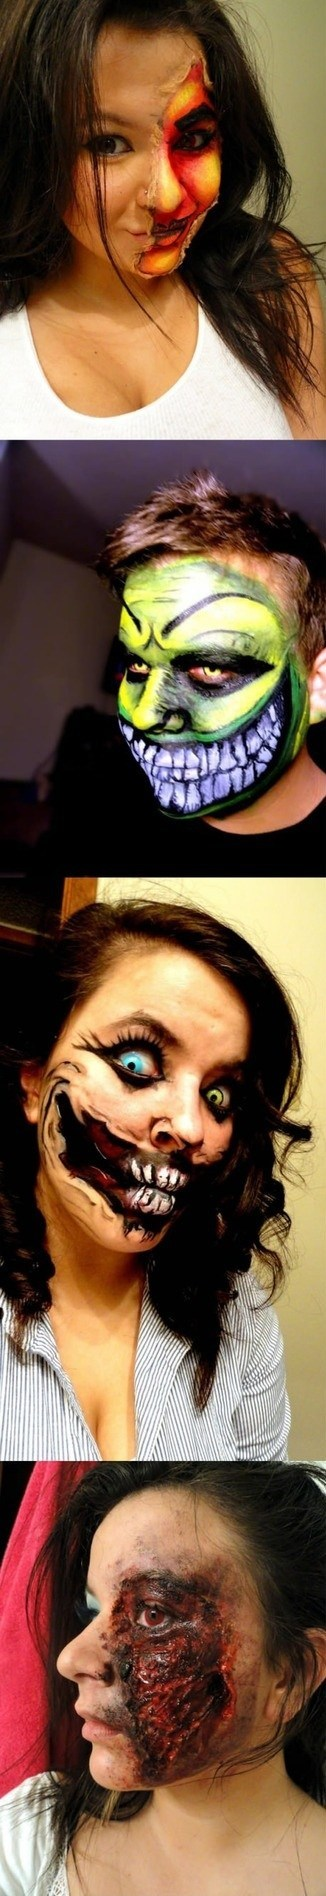 halloween,costume,face paint